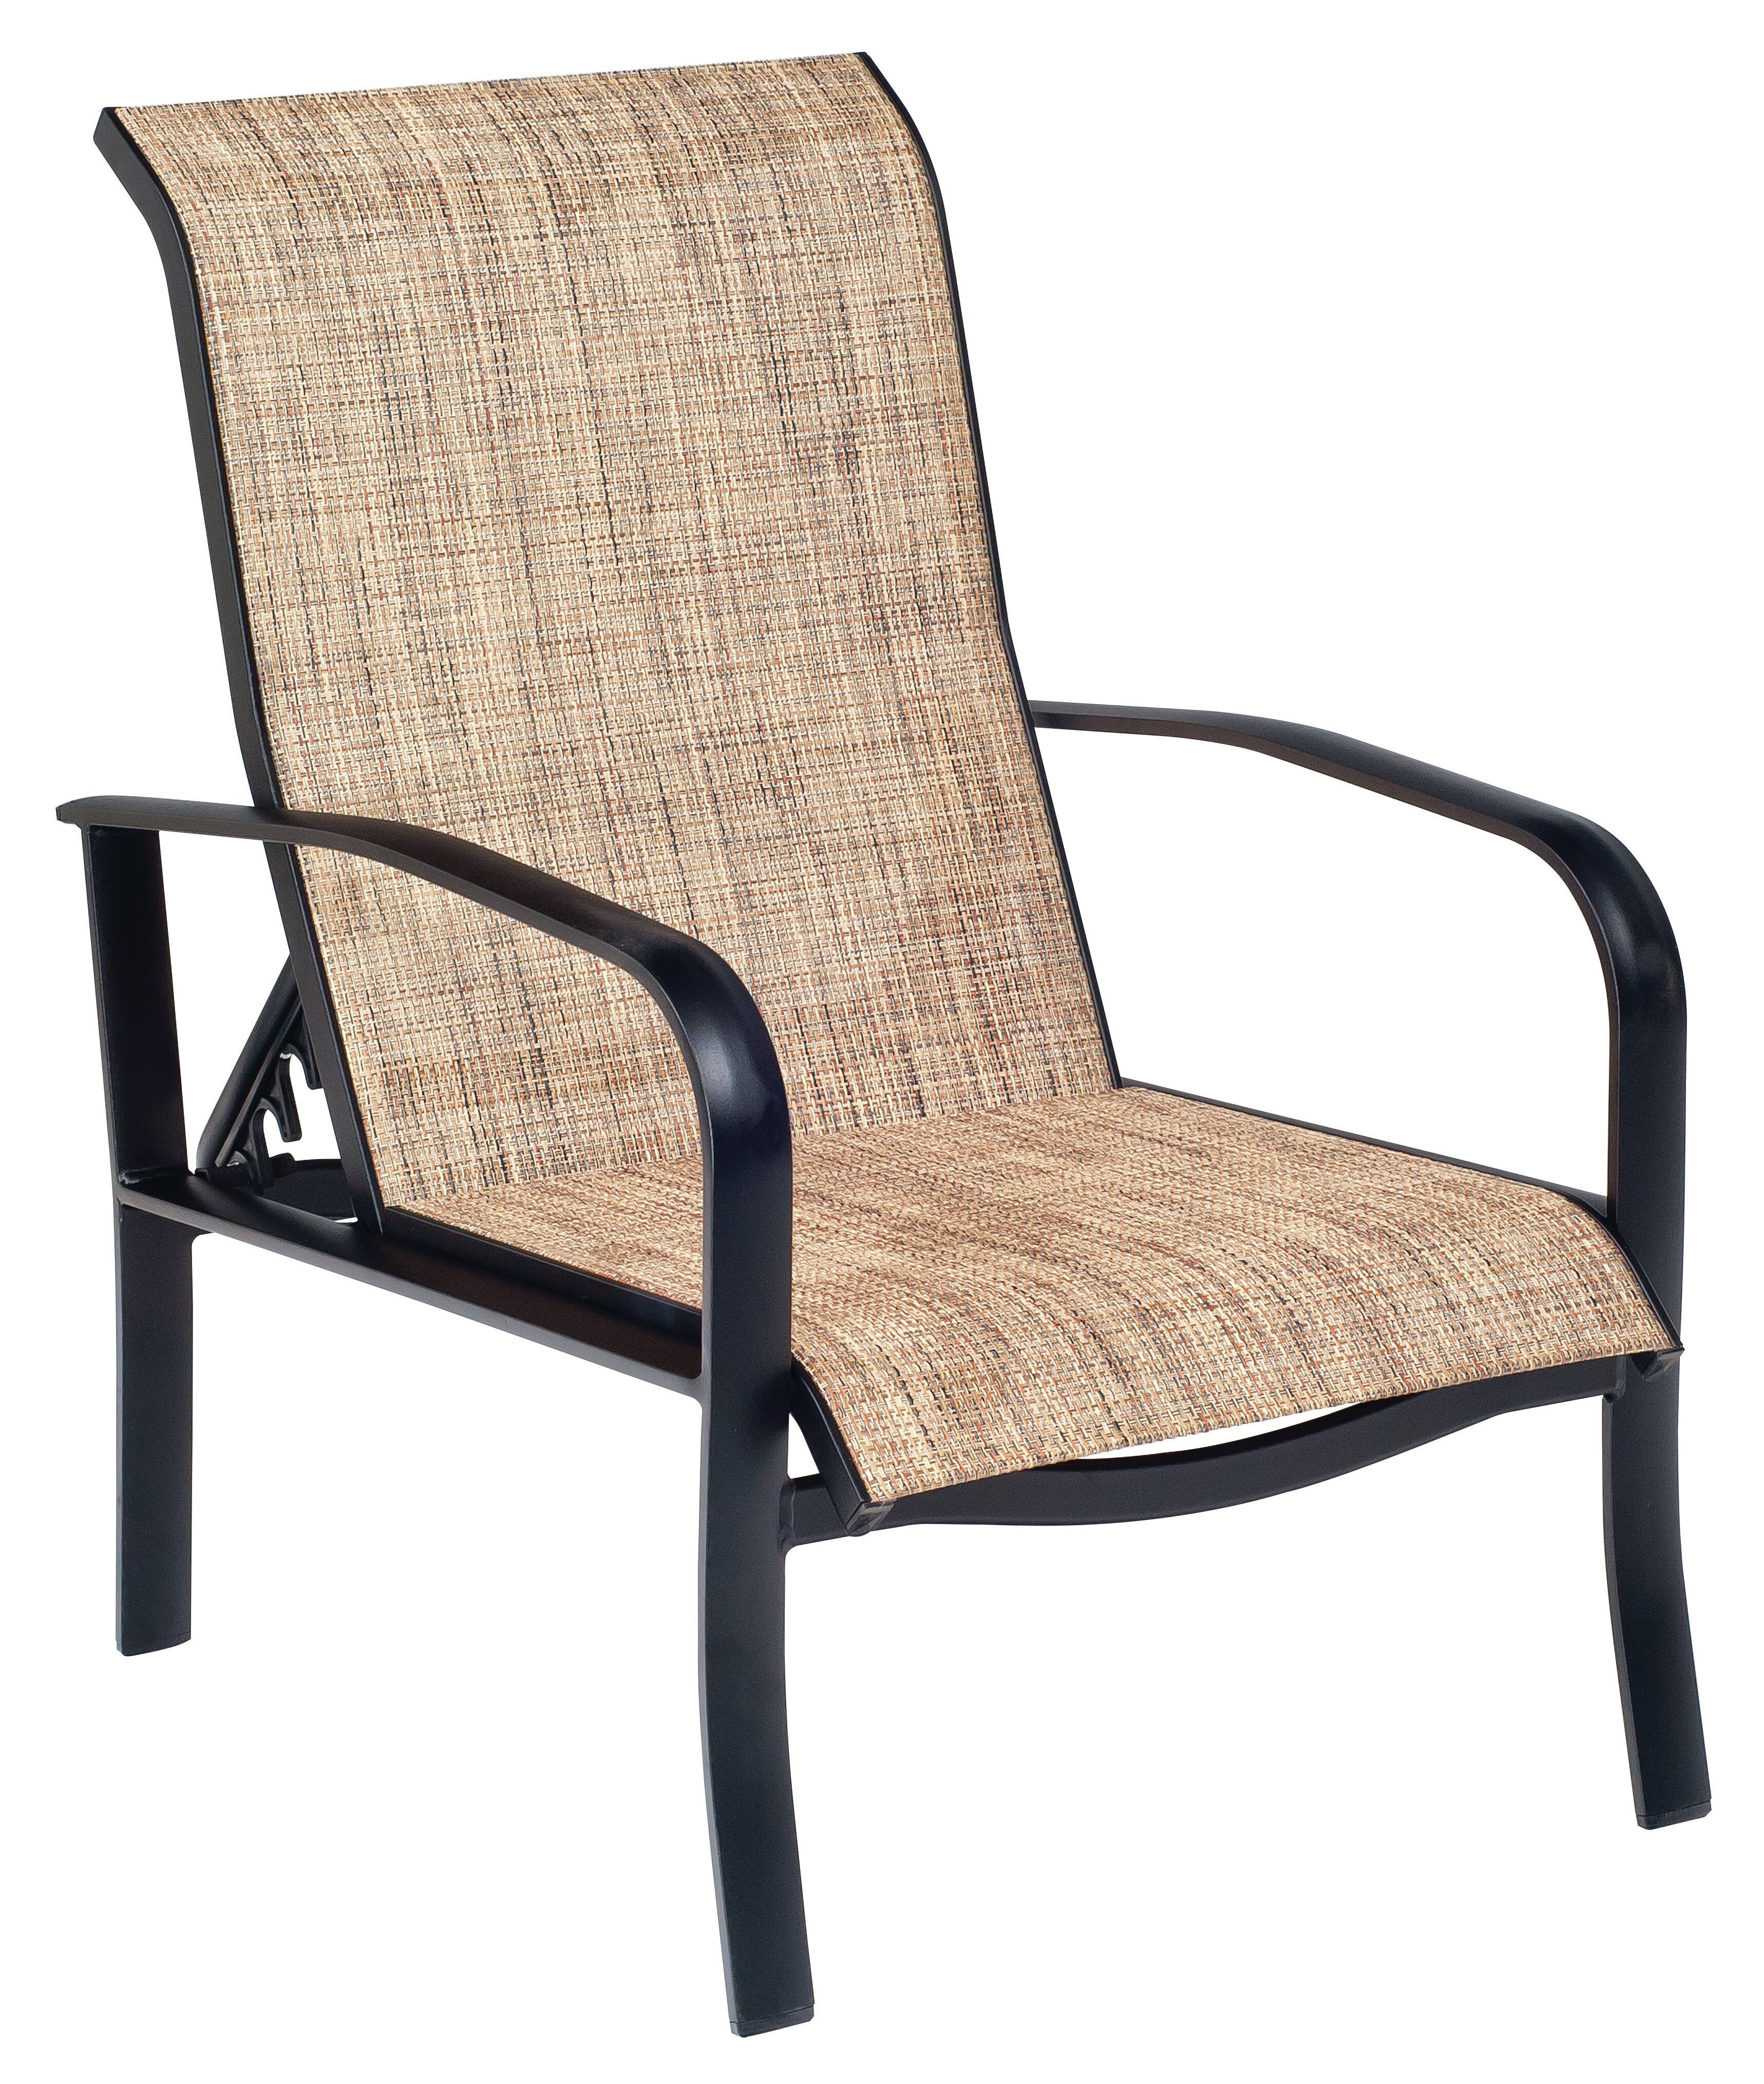 Fremont Sling Adjule Patio Chair